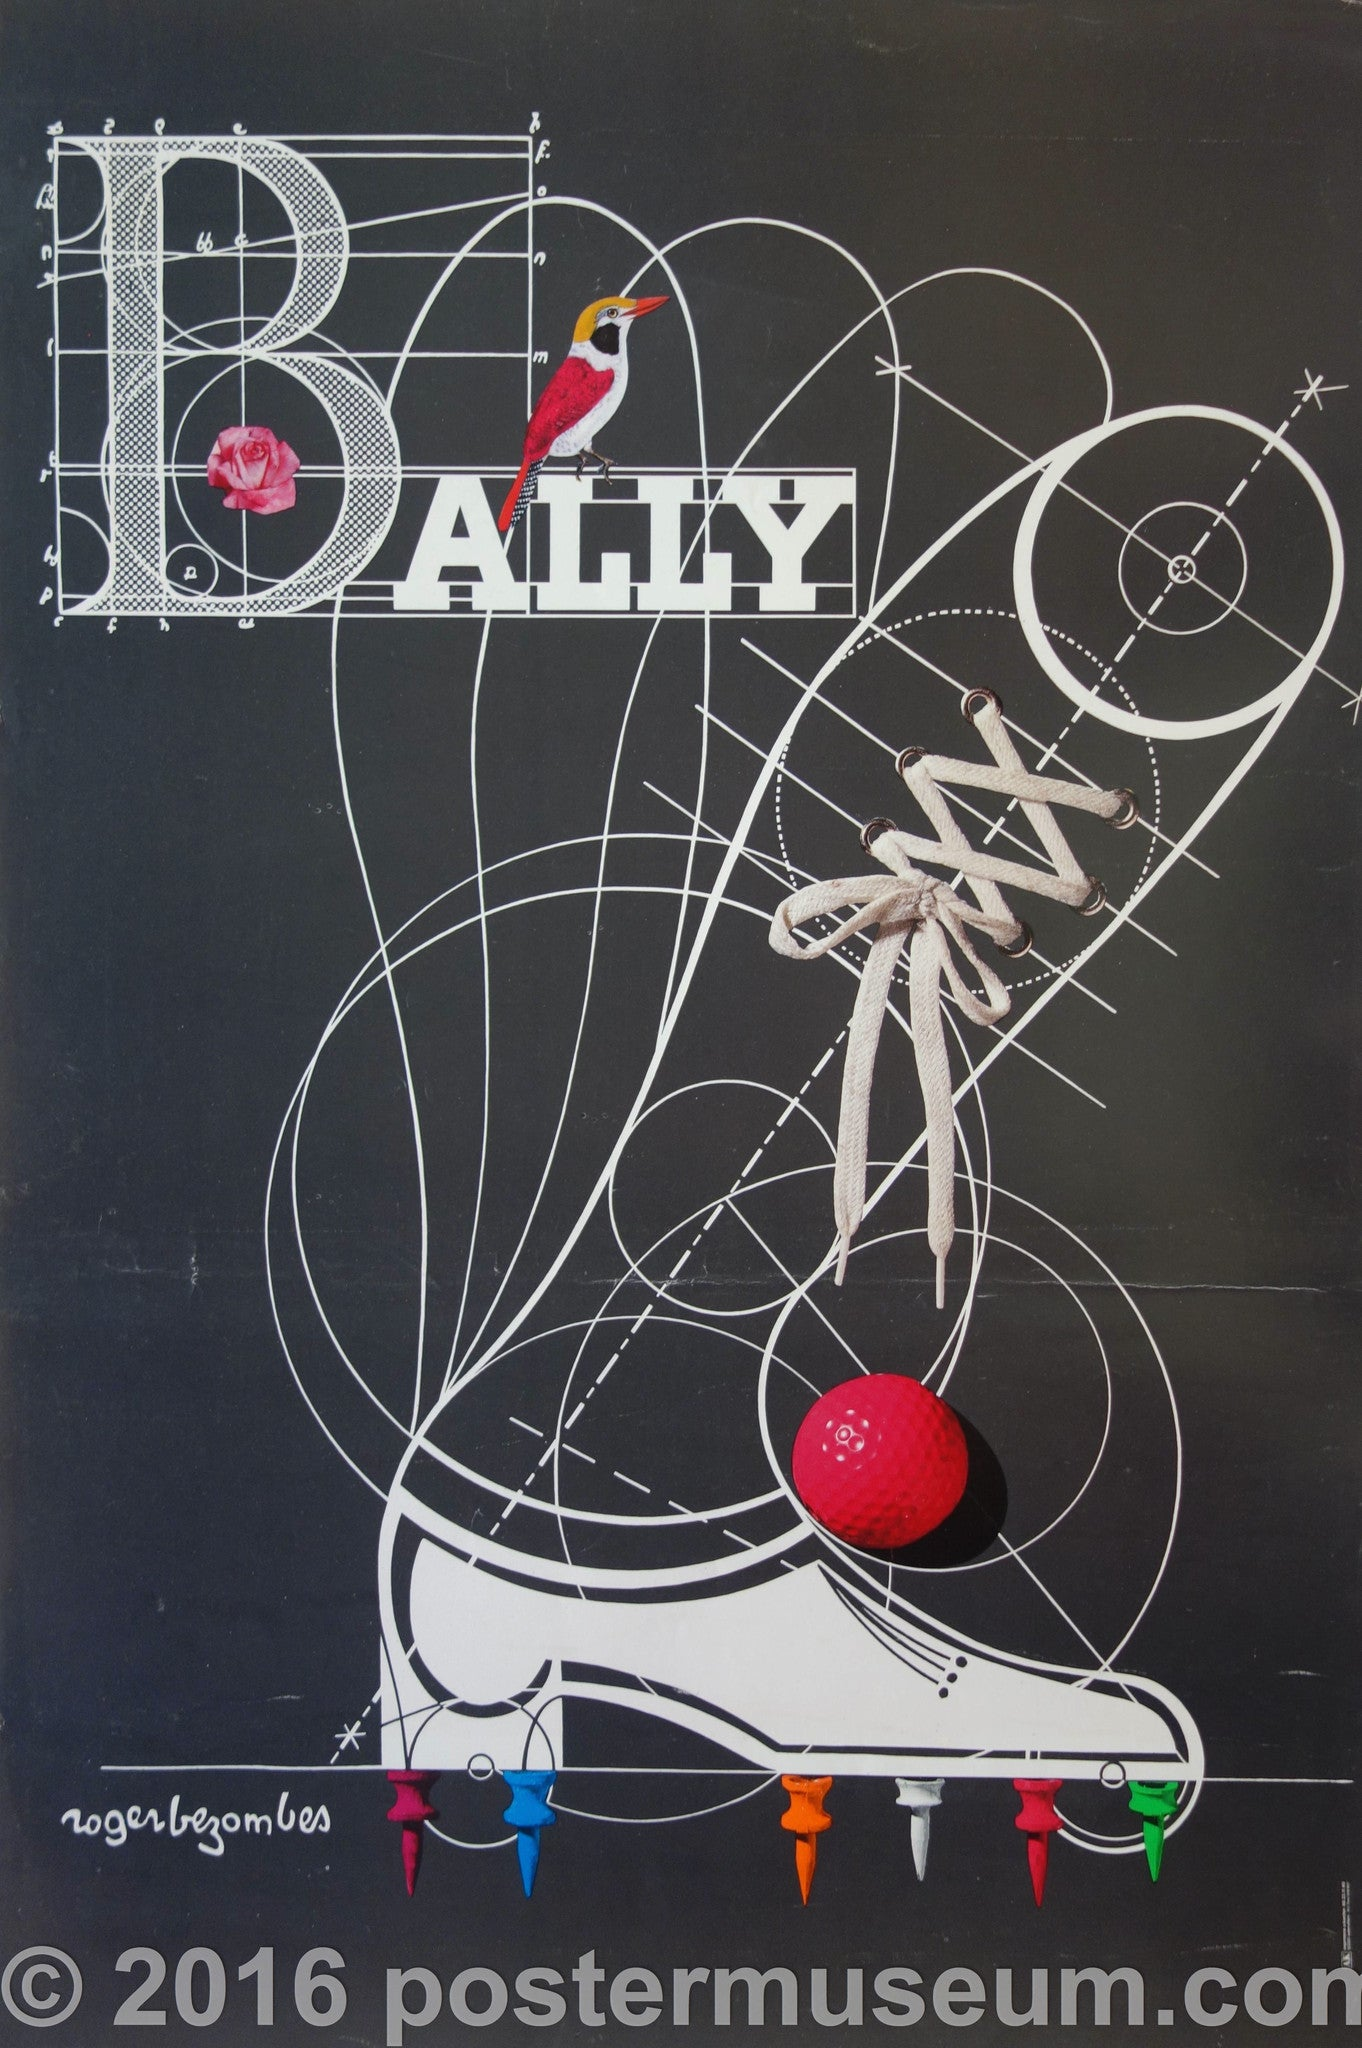 Ballys (Red Golf Ball)